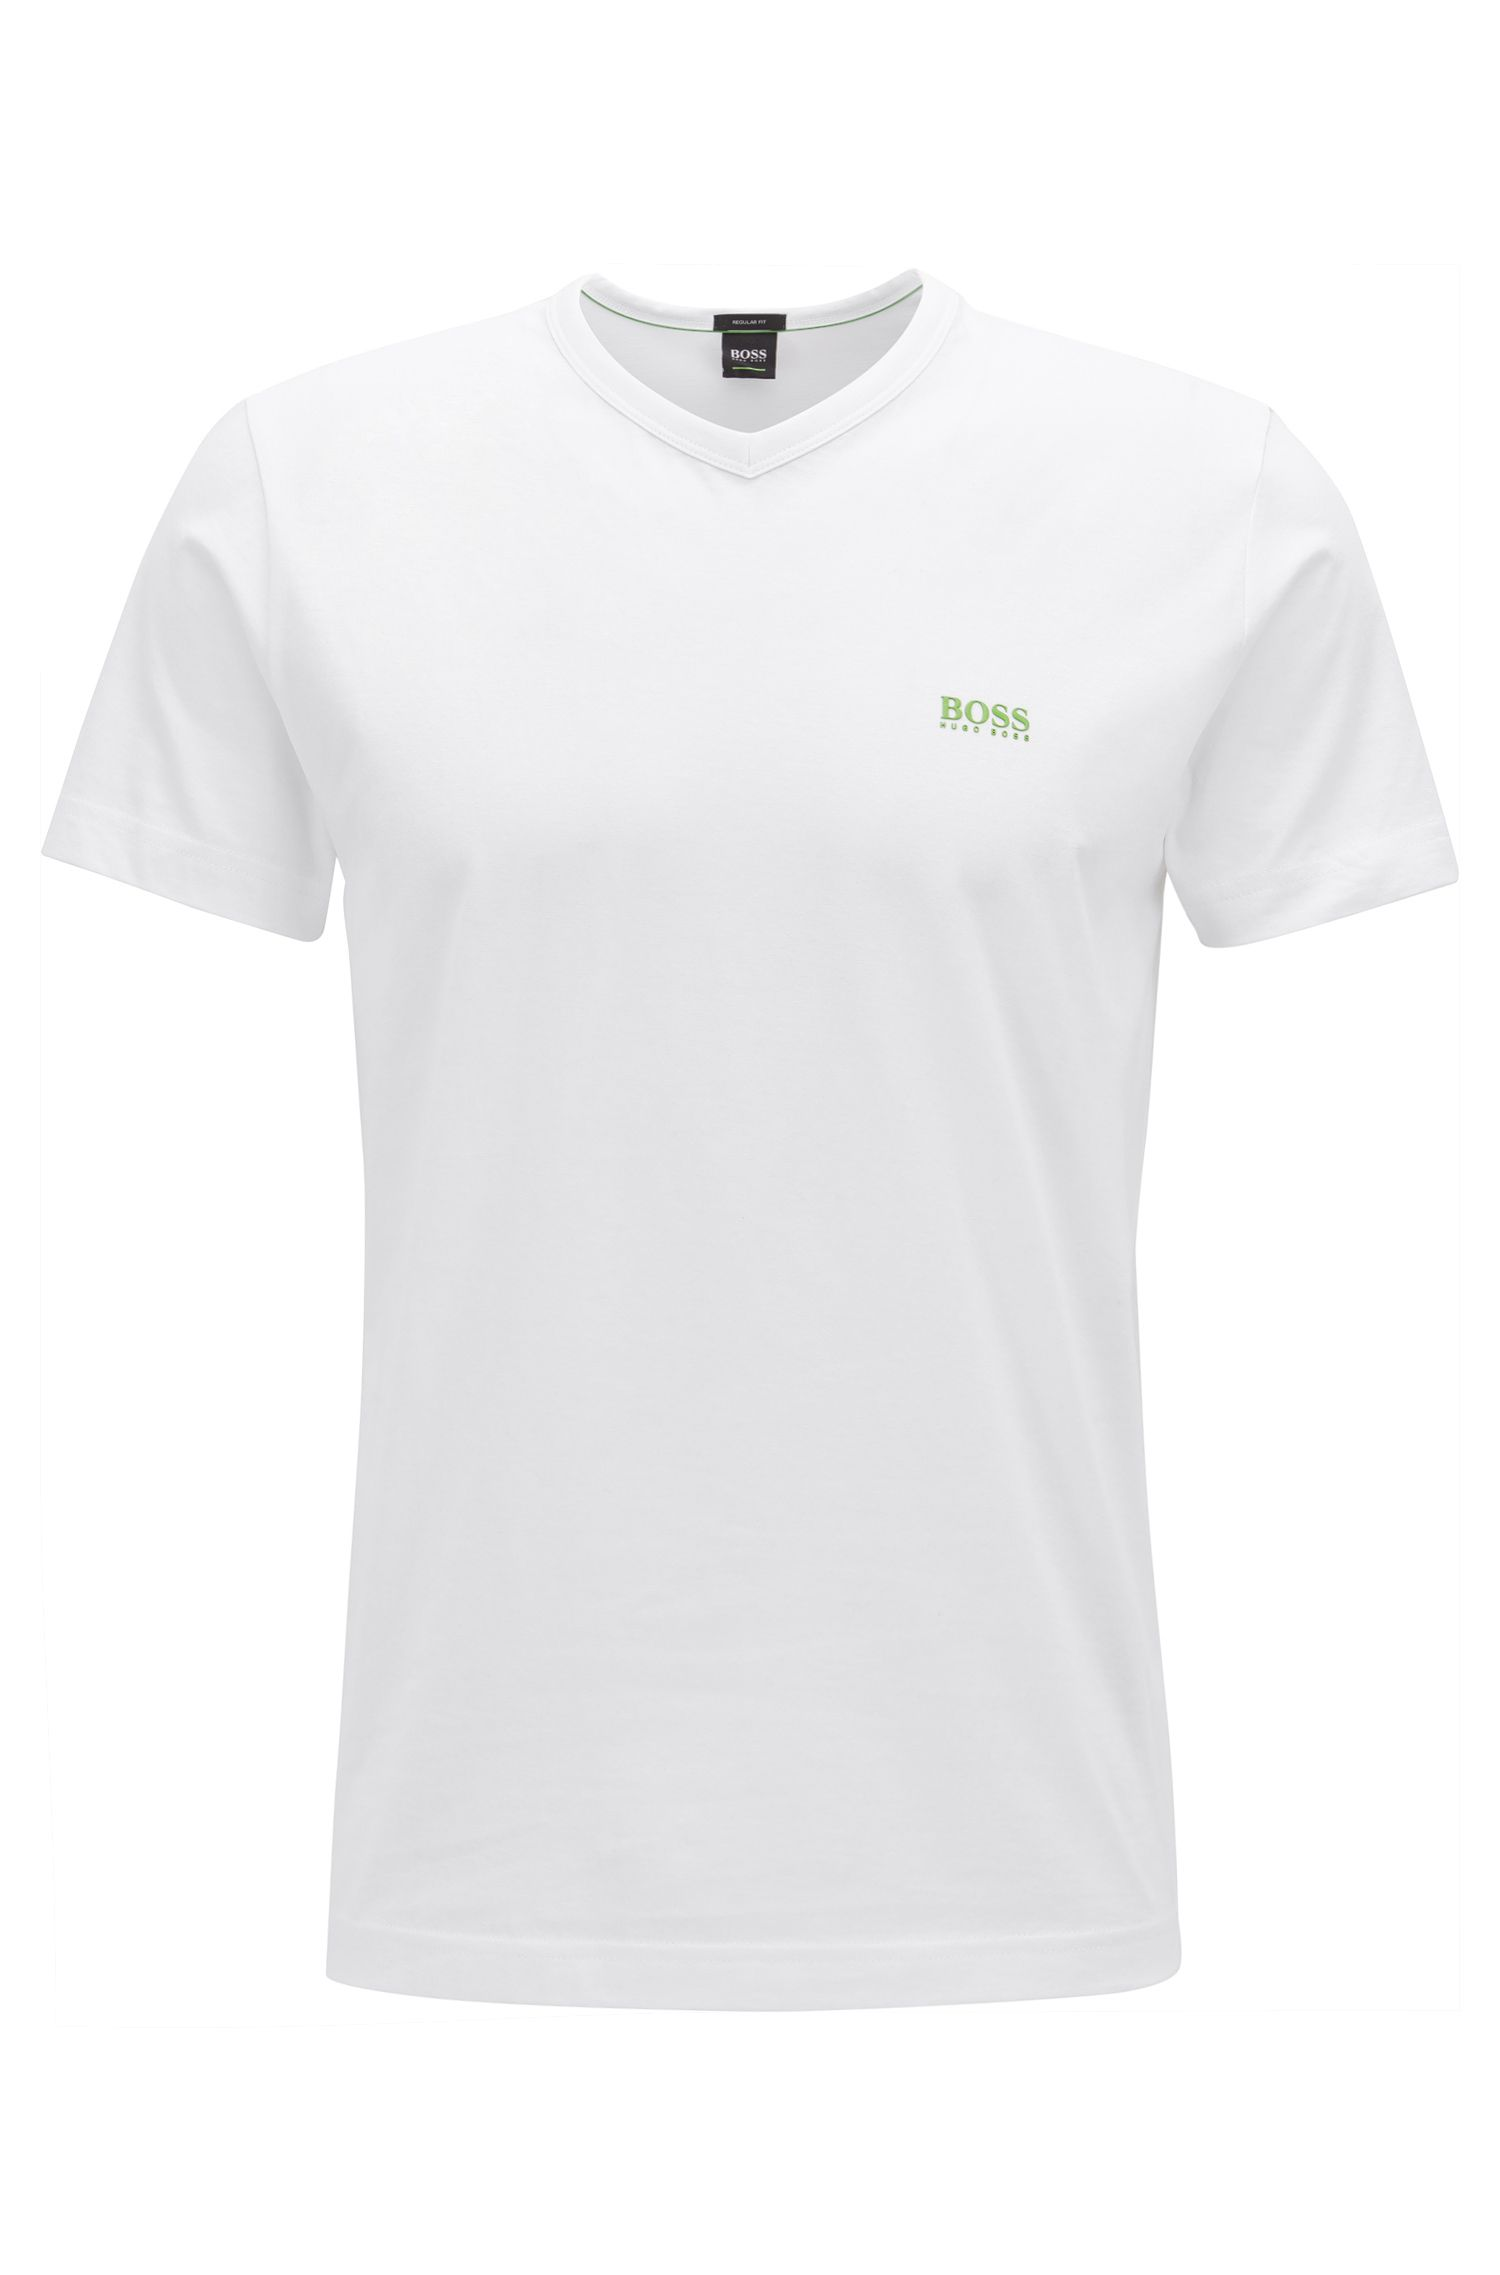 Cotton V-Neck T-Shirt | Teevn